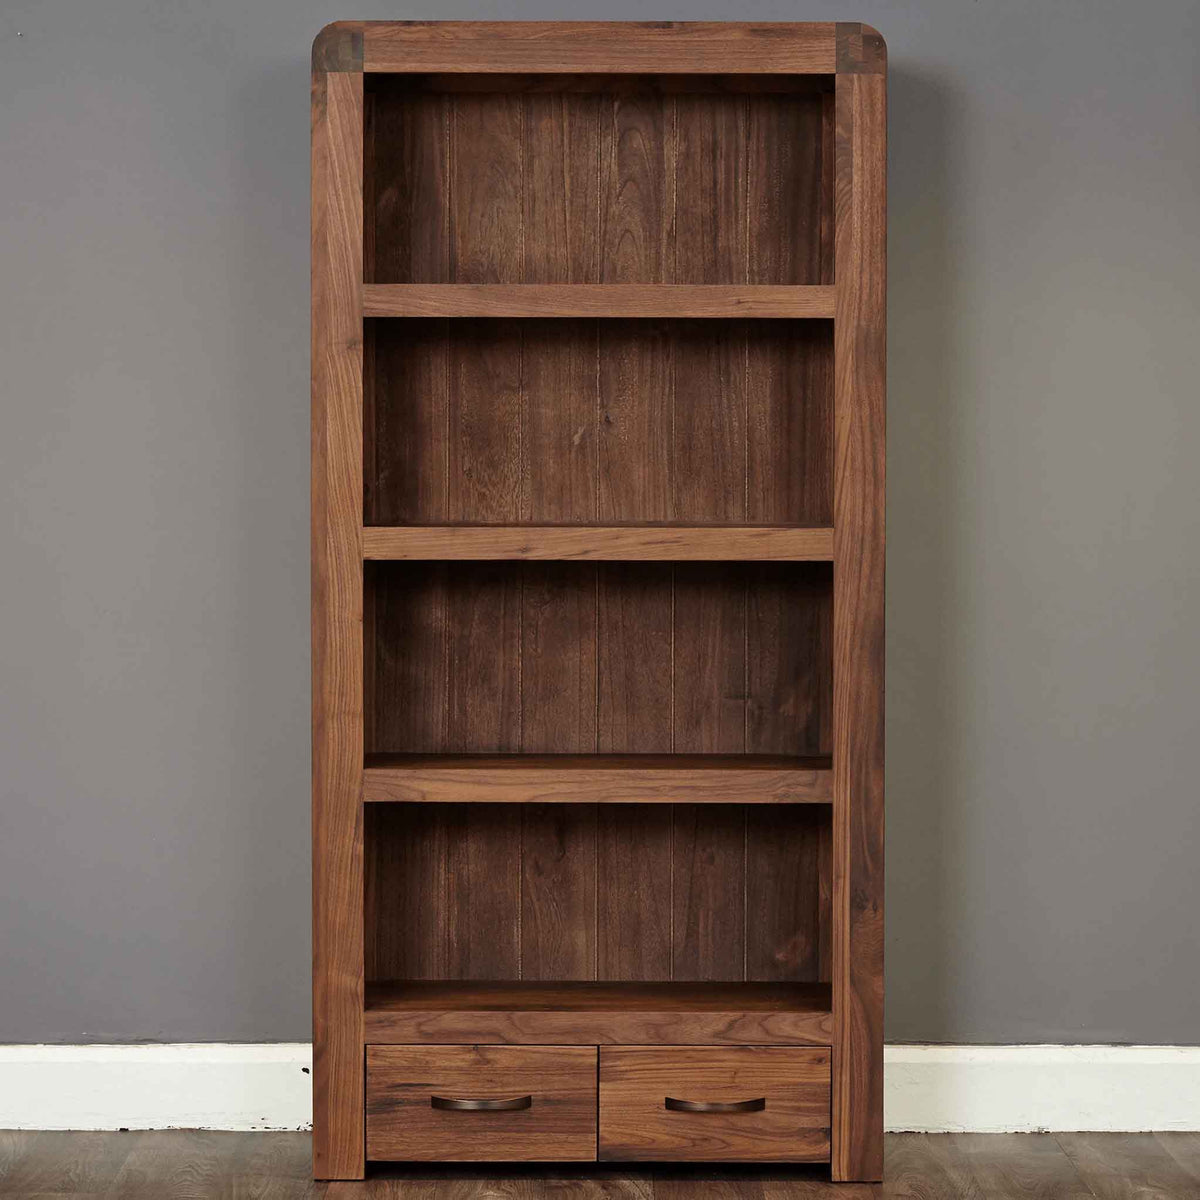 The Salem Walnut Tall Large Wooden Bookcase with 4 Shelves from Roseland Furniture